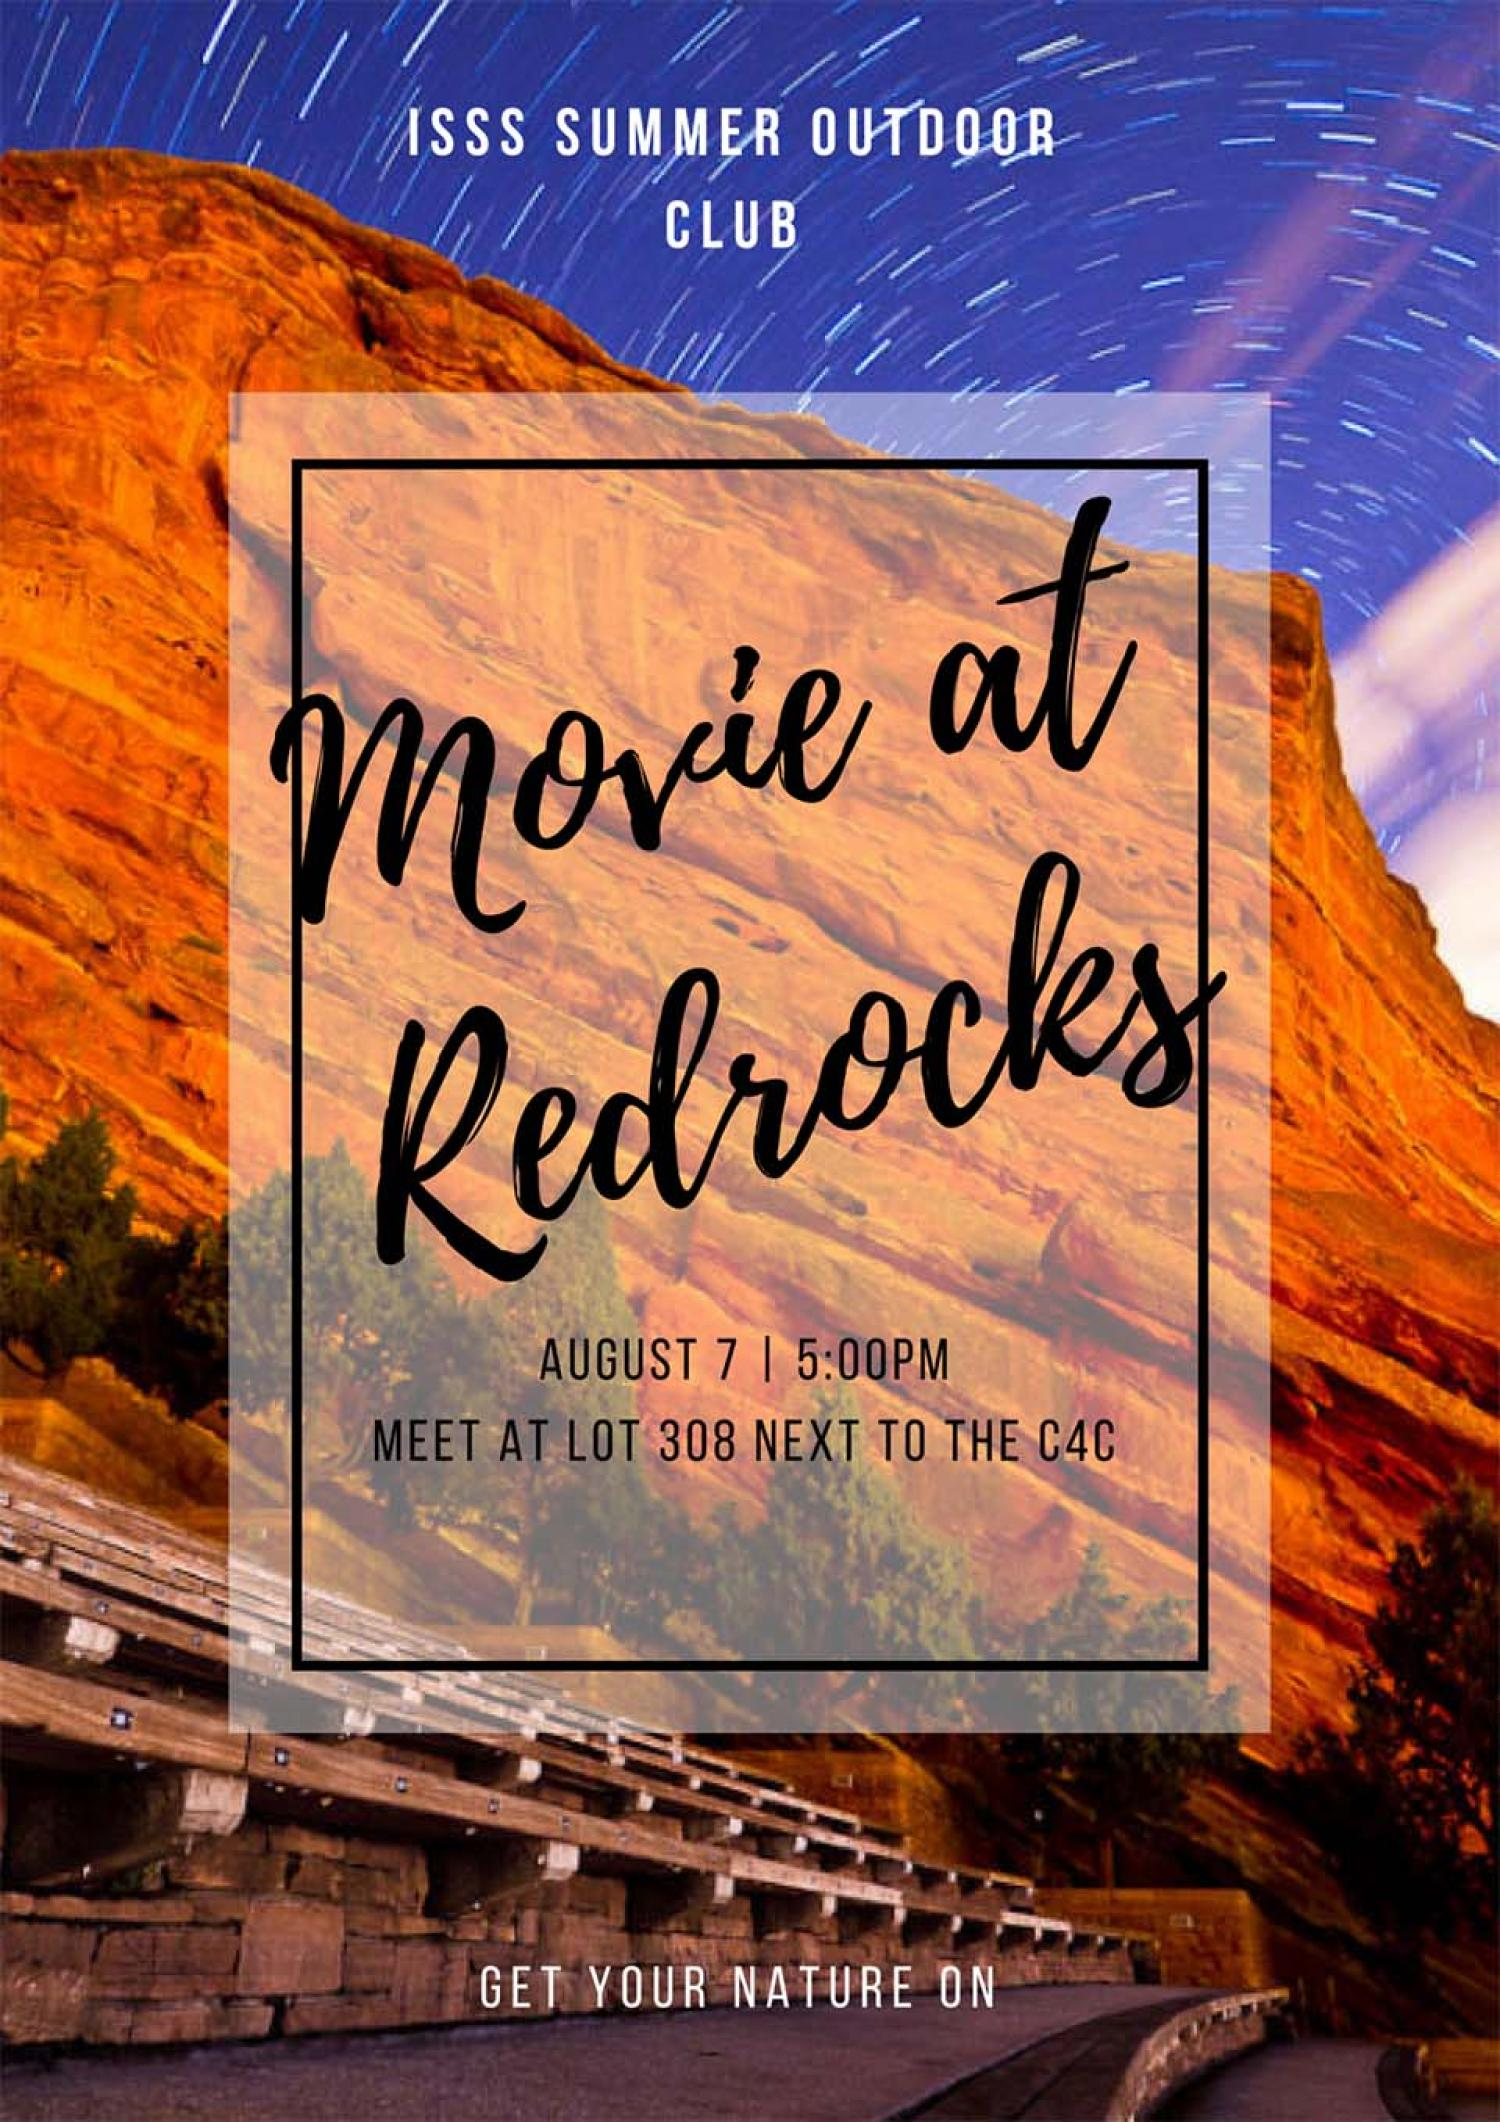 Movie at Red Rocks Event Flyer